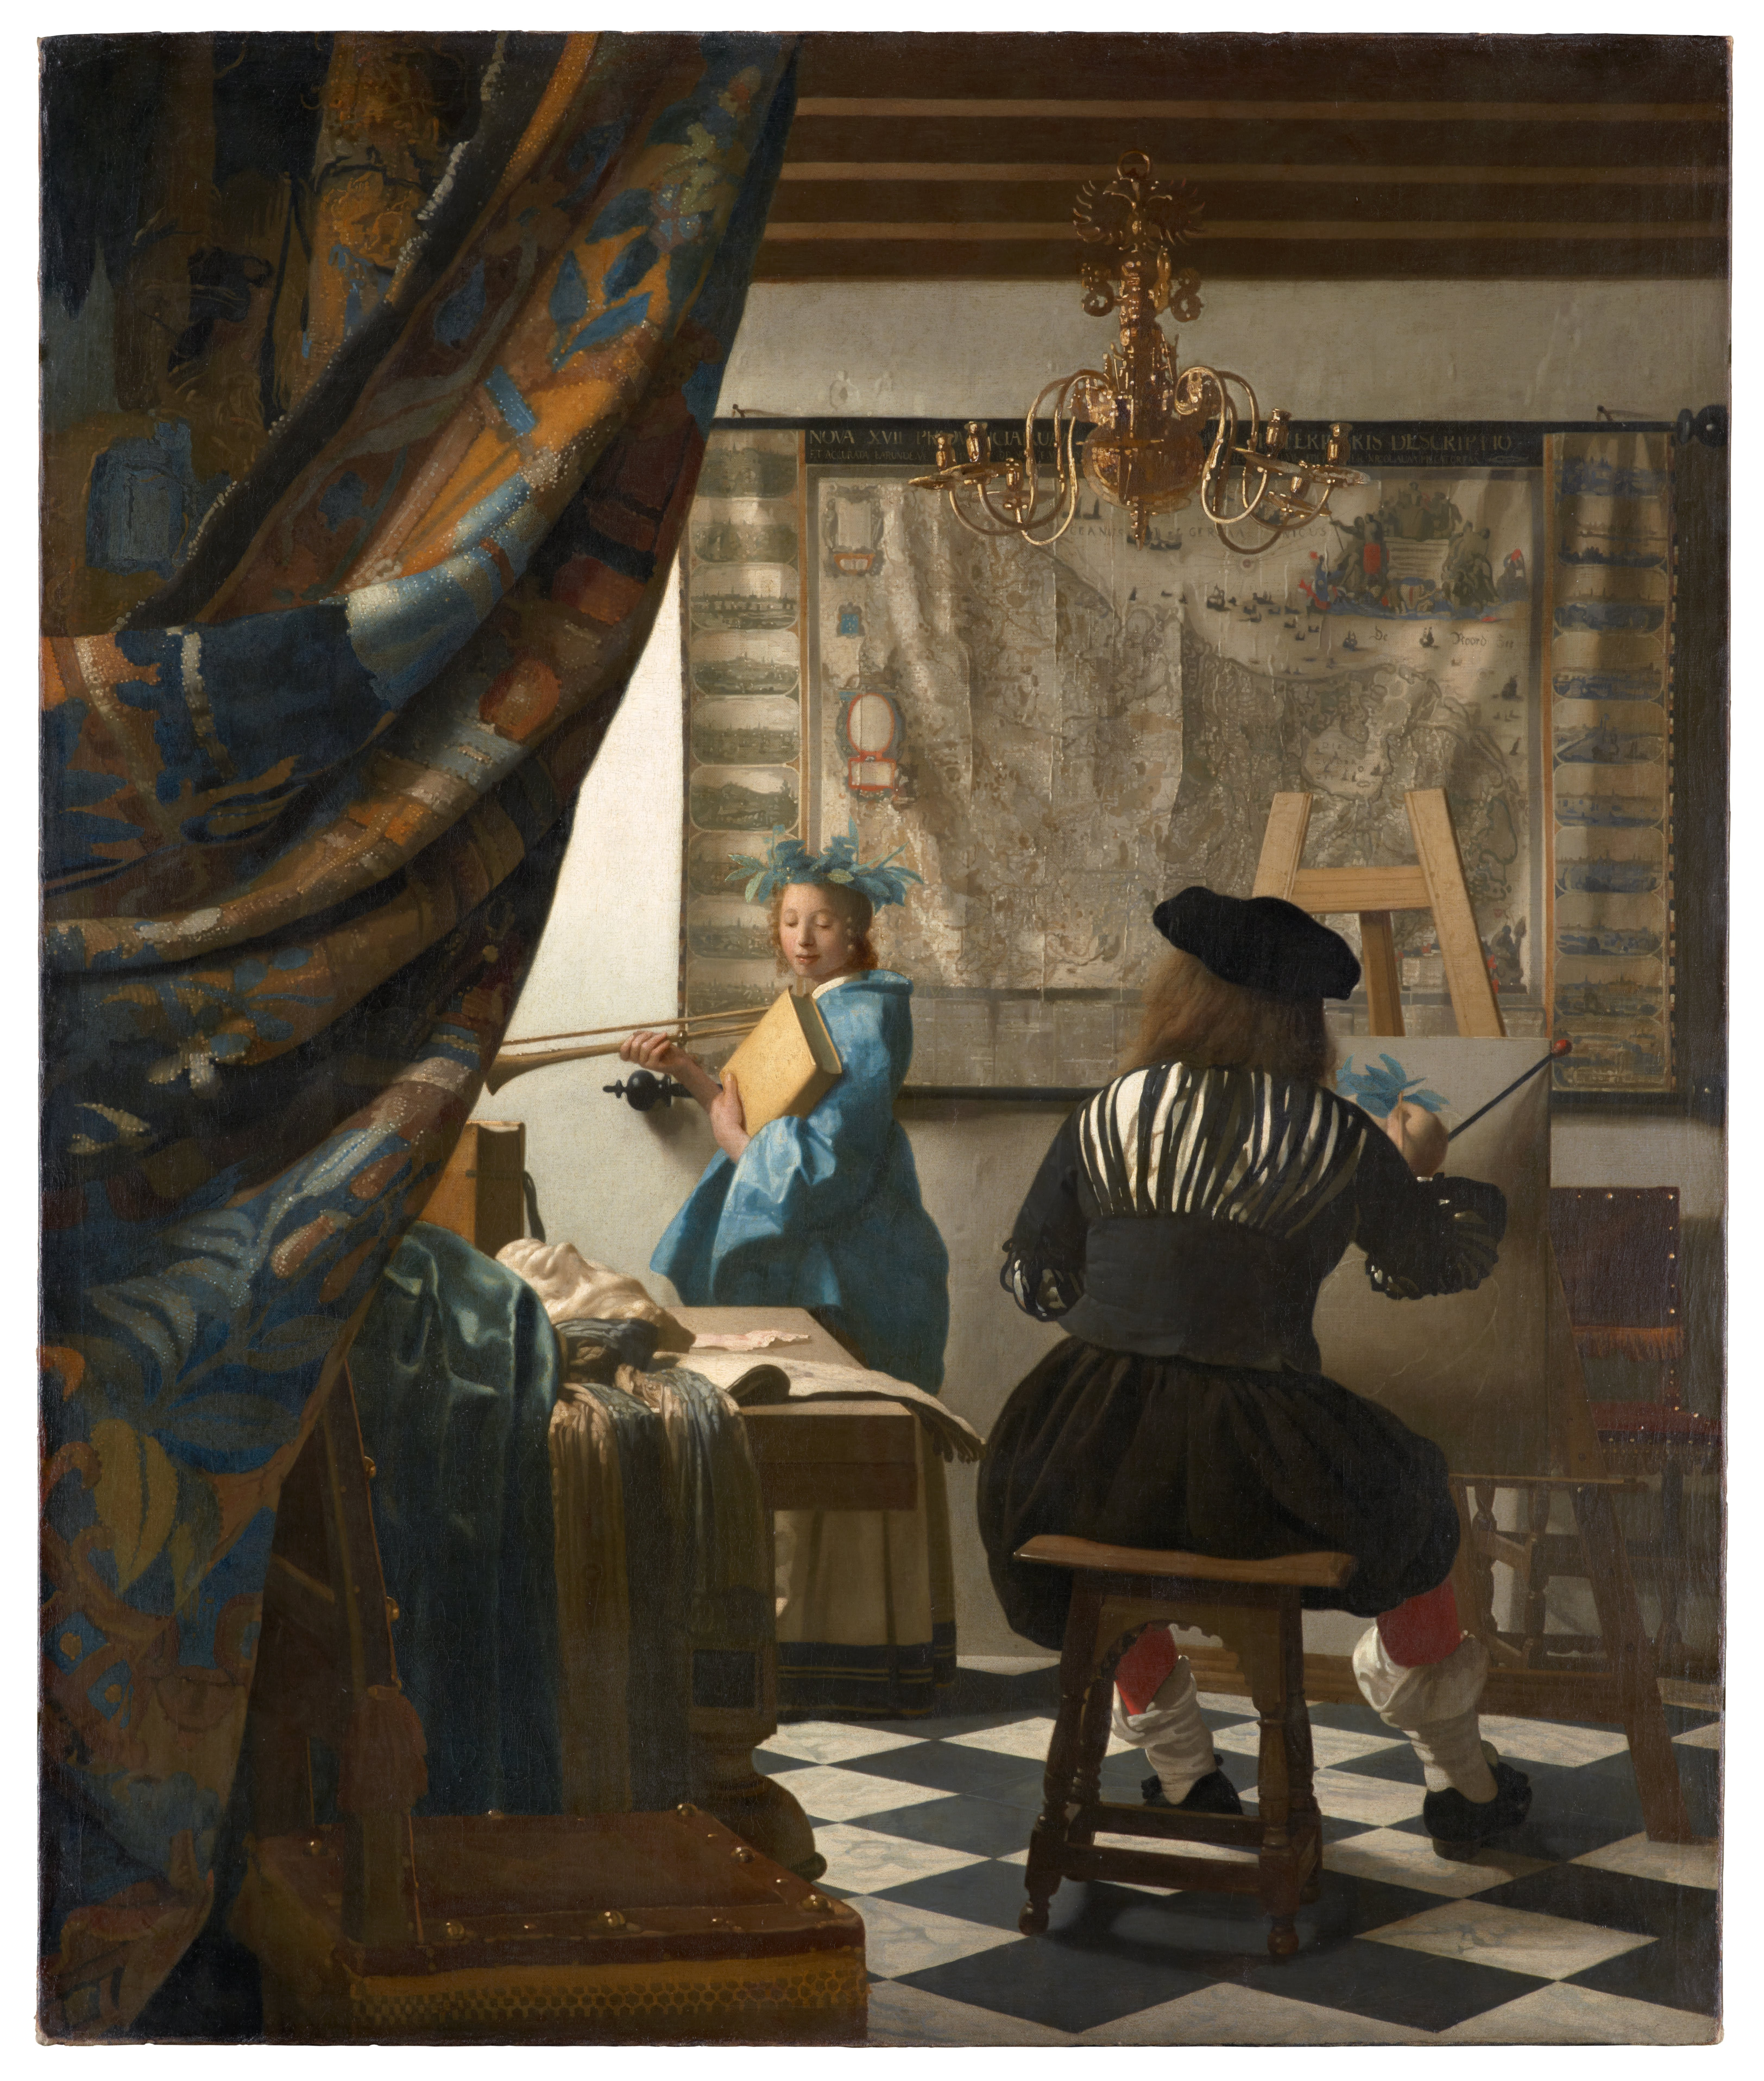 SELF-PORTRAITURE IN THE 17th CENTURY III – The Higher Inquiètude